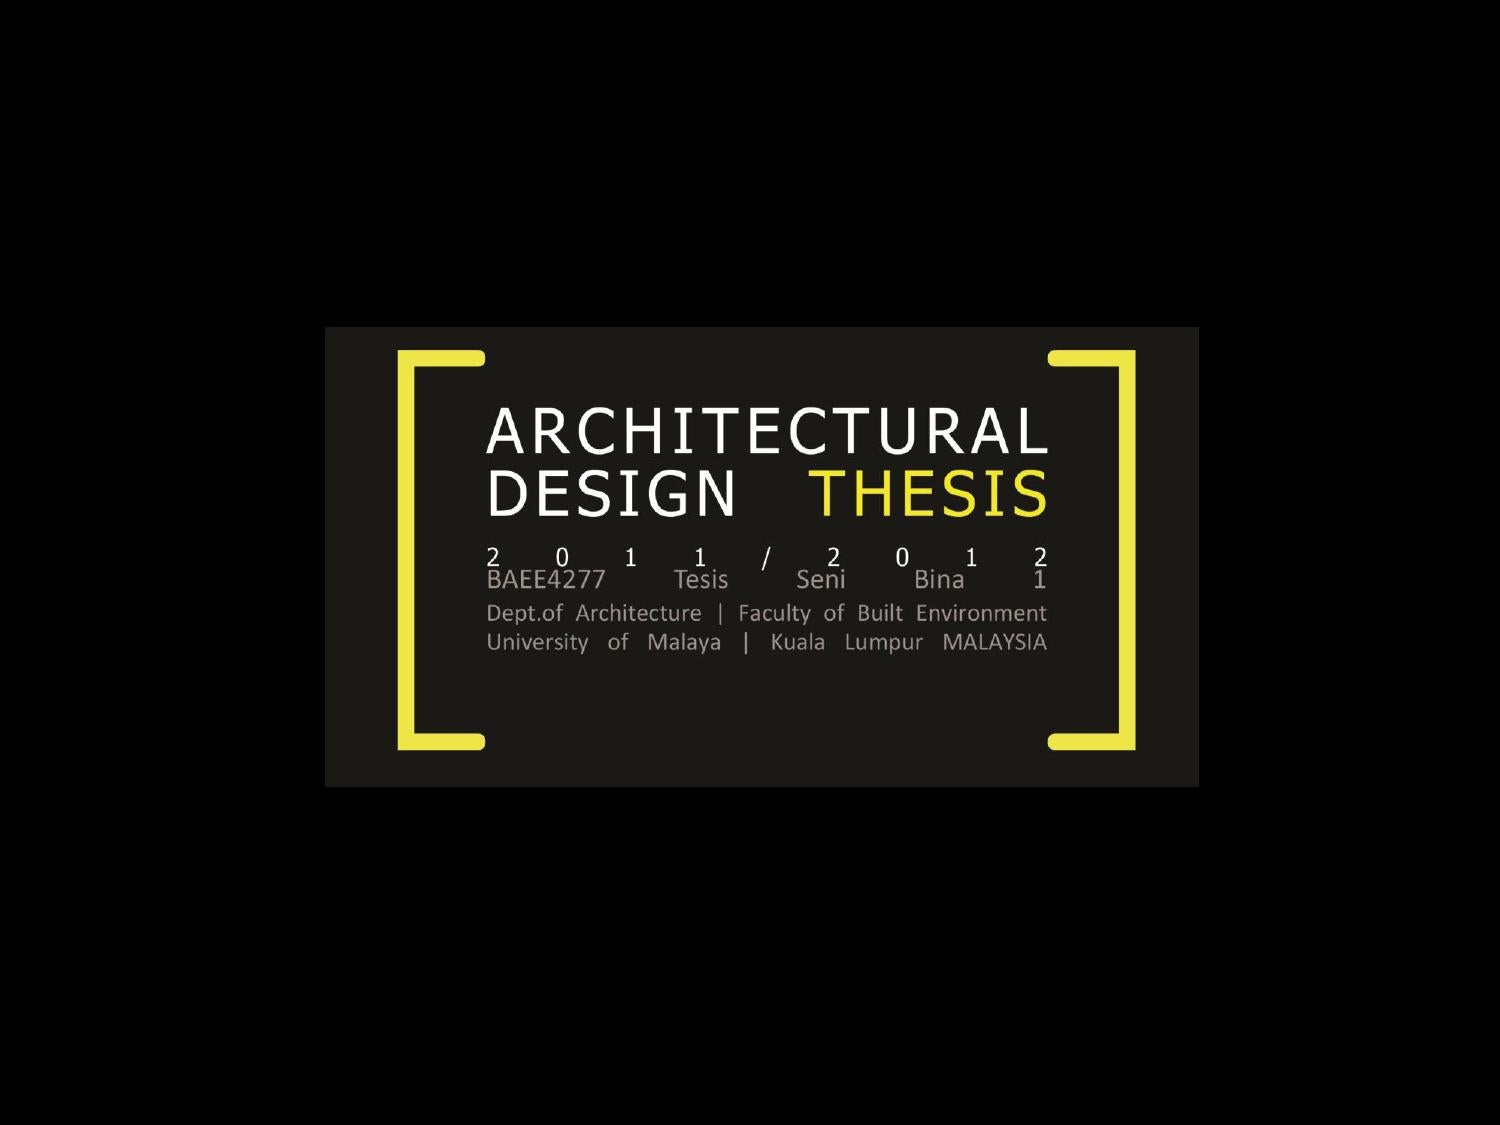 architectural thesis proposal lists